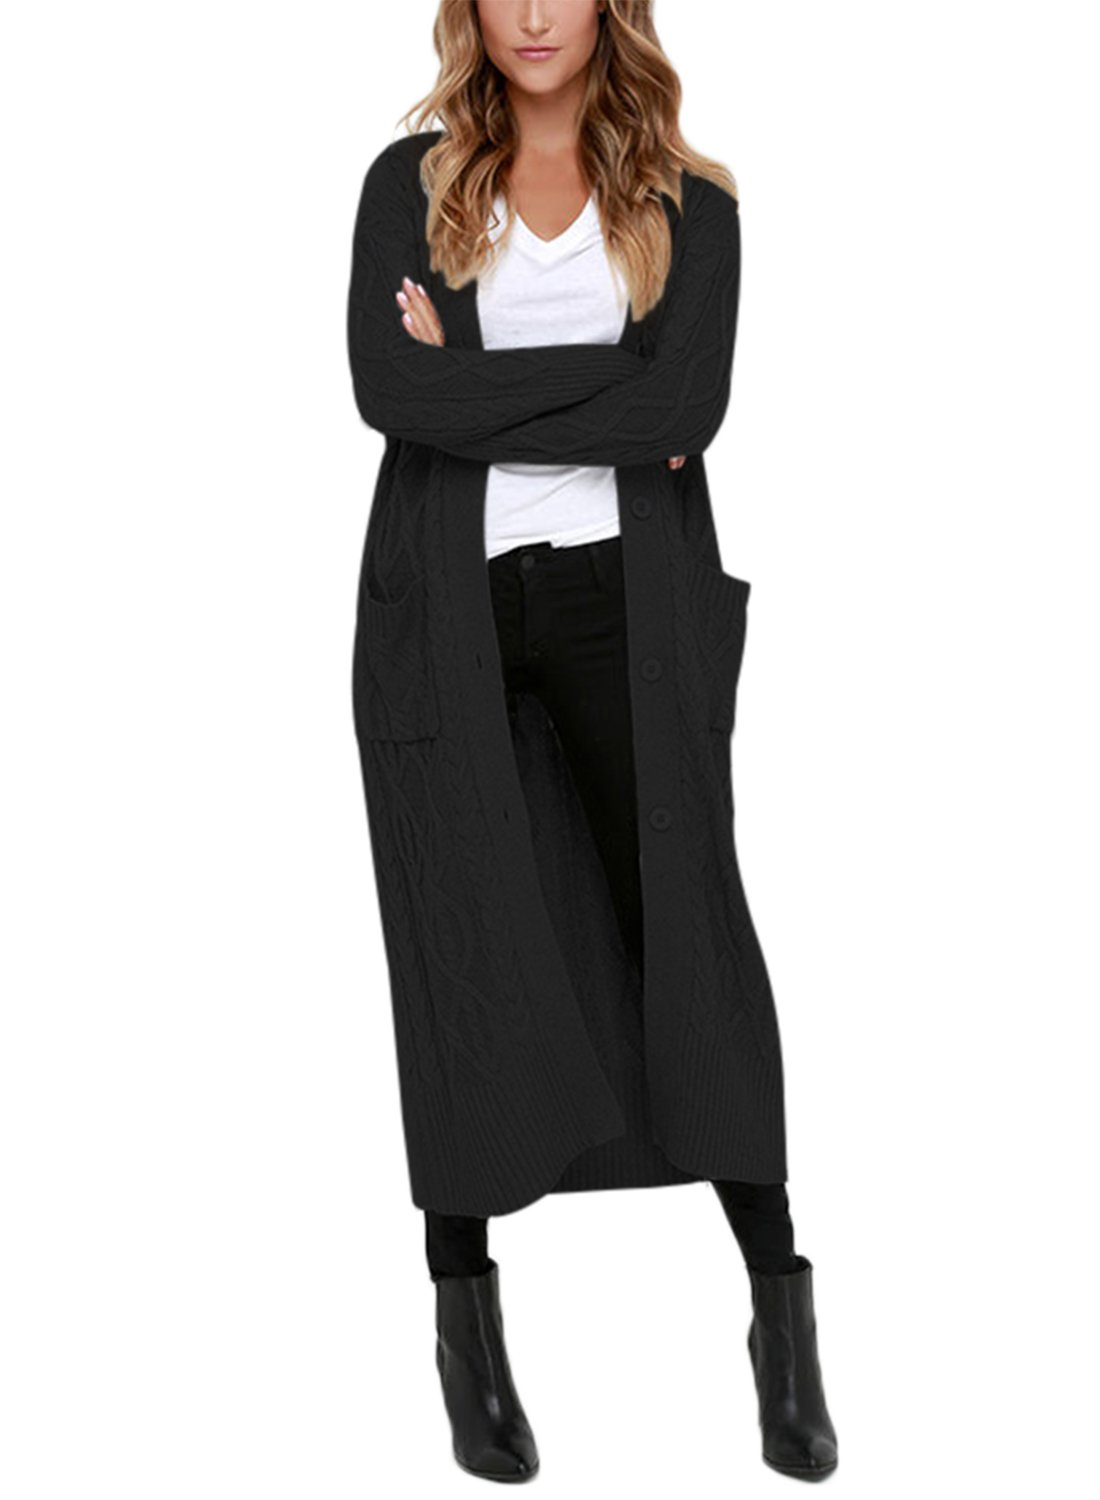 Dearlovers Womens Open Front Casual Long Maxi Cardigans Knit Sweater Outerwear X-Large Size Black